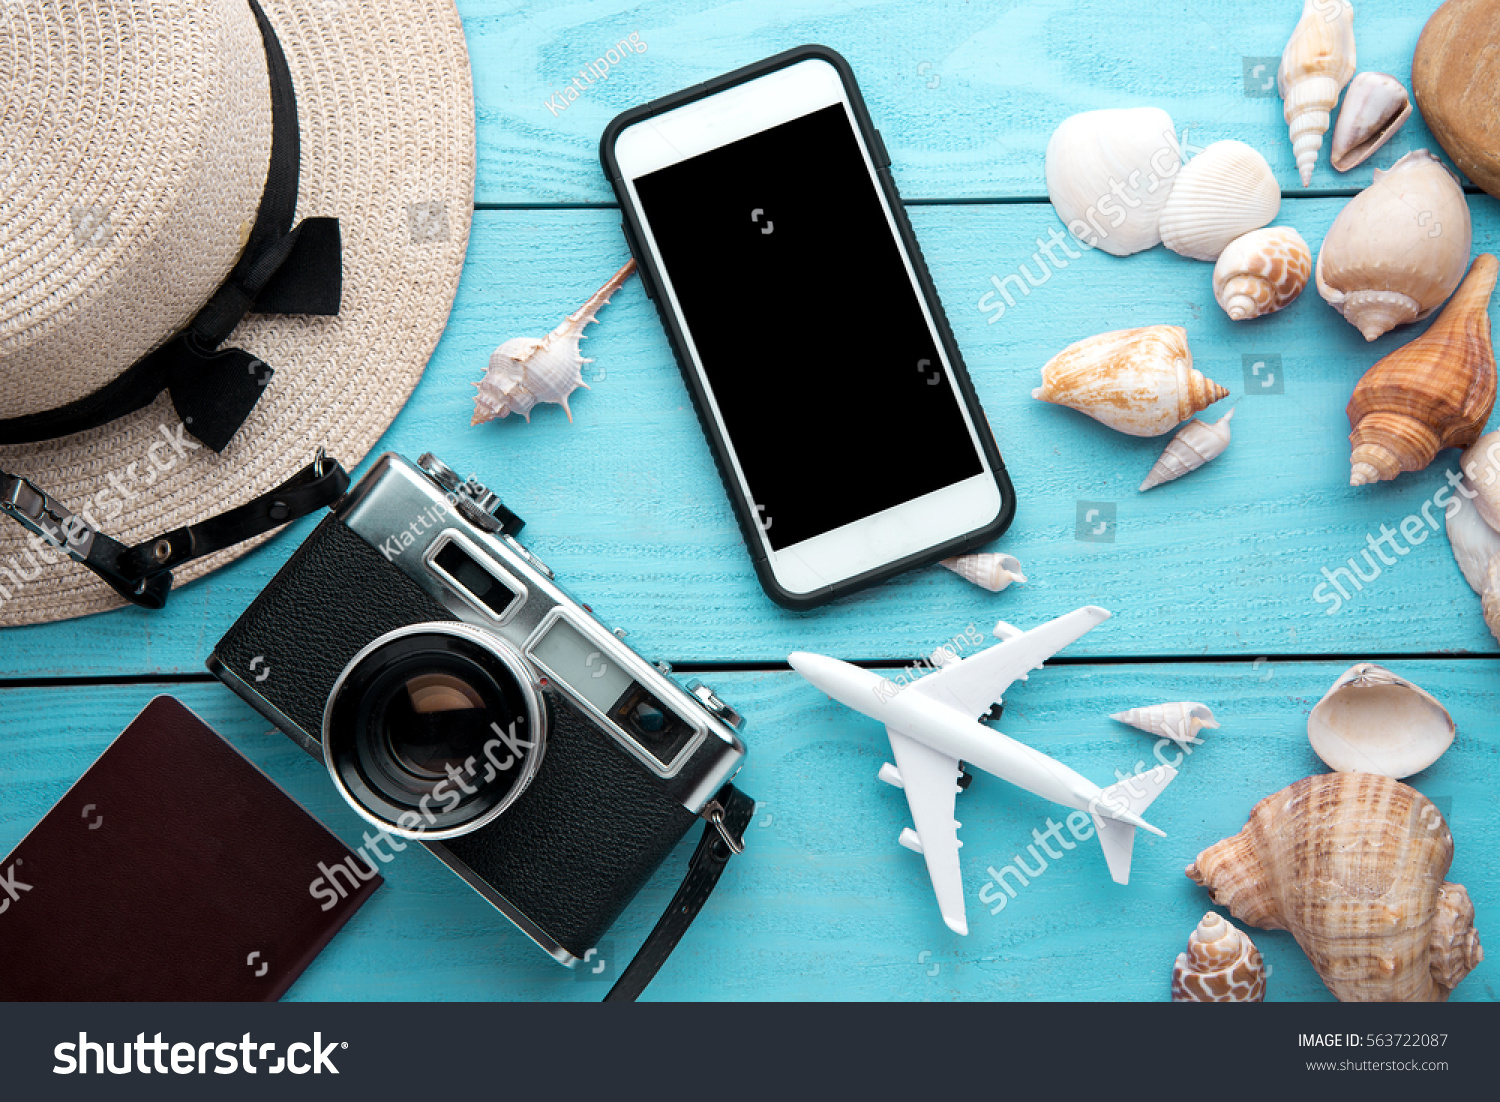 Useful gadgets and accessories for summer holidays